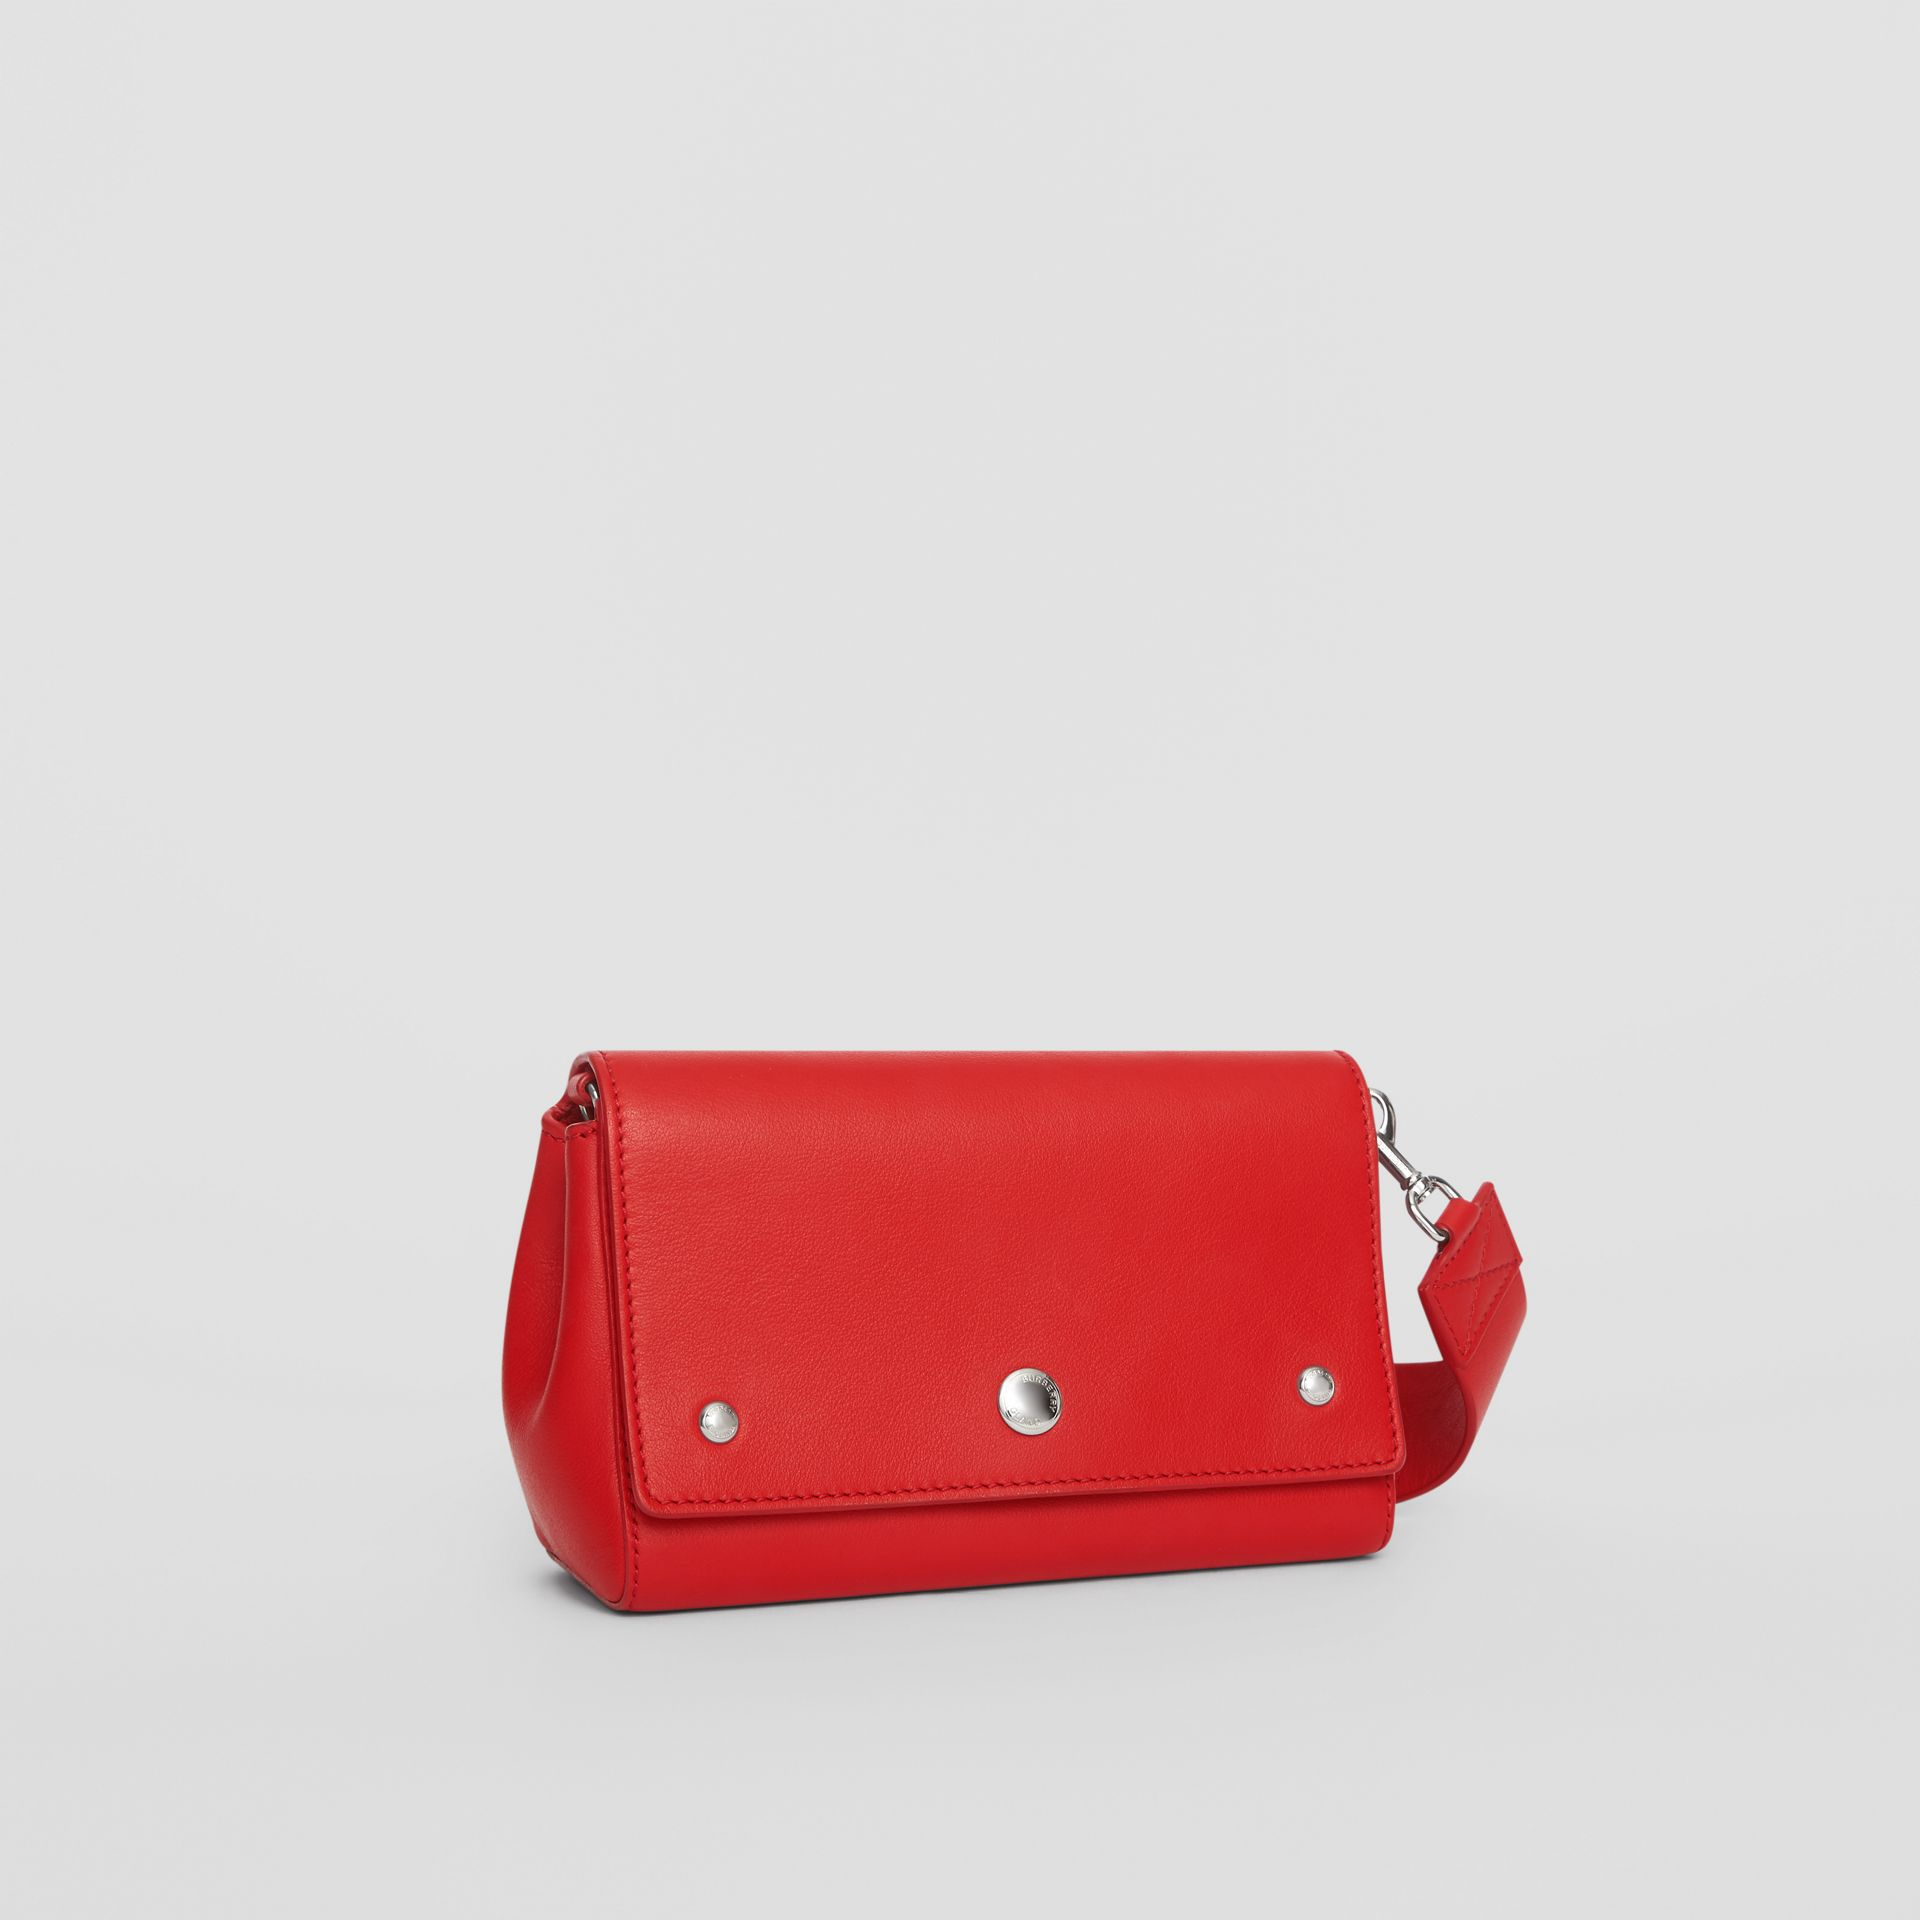 Small Quote Print Grainy Leather Crossbody Bag in Bright Military Red - Women | Burberry - gallery image 6